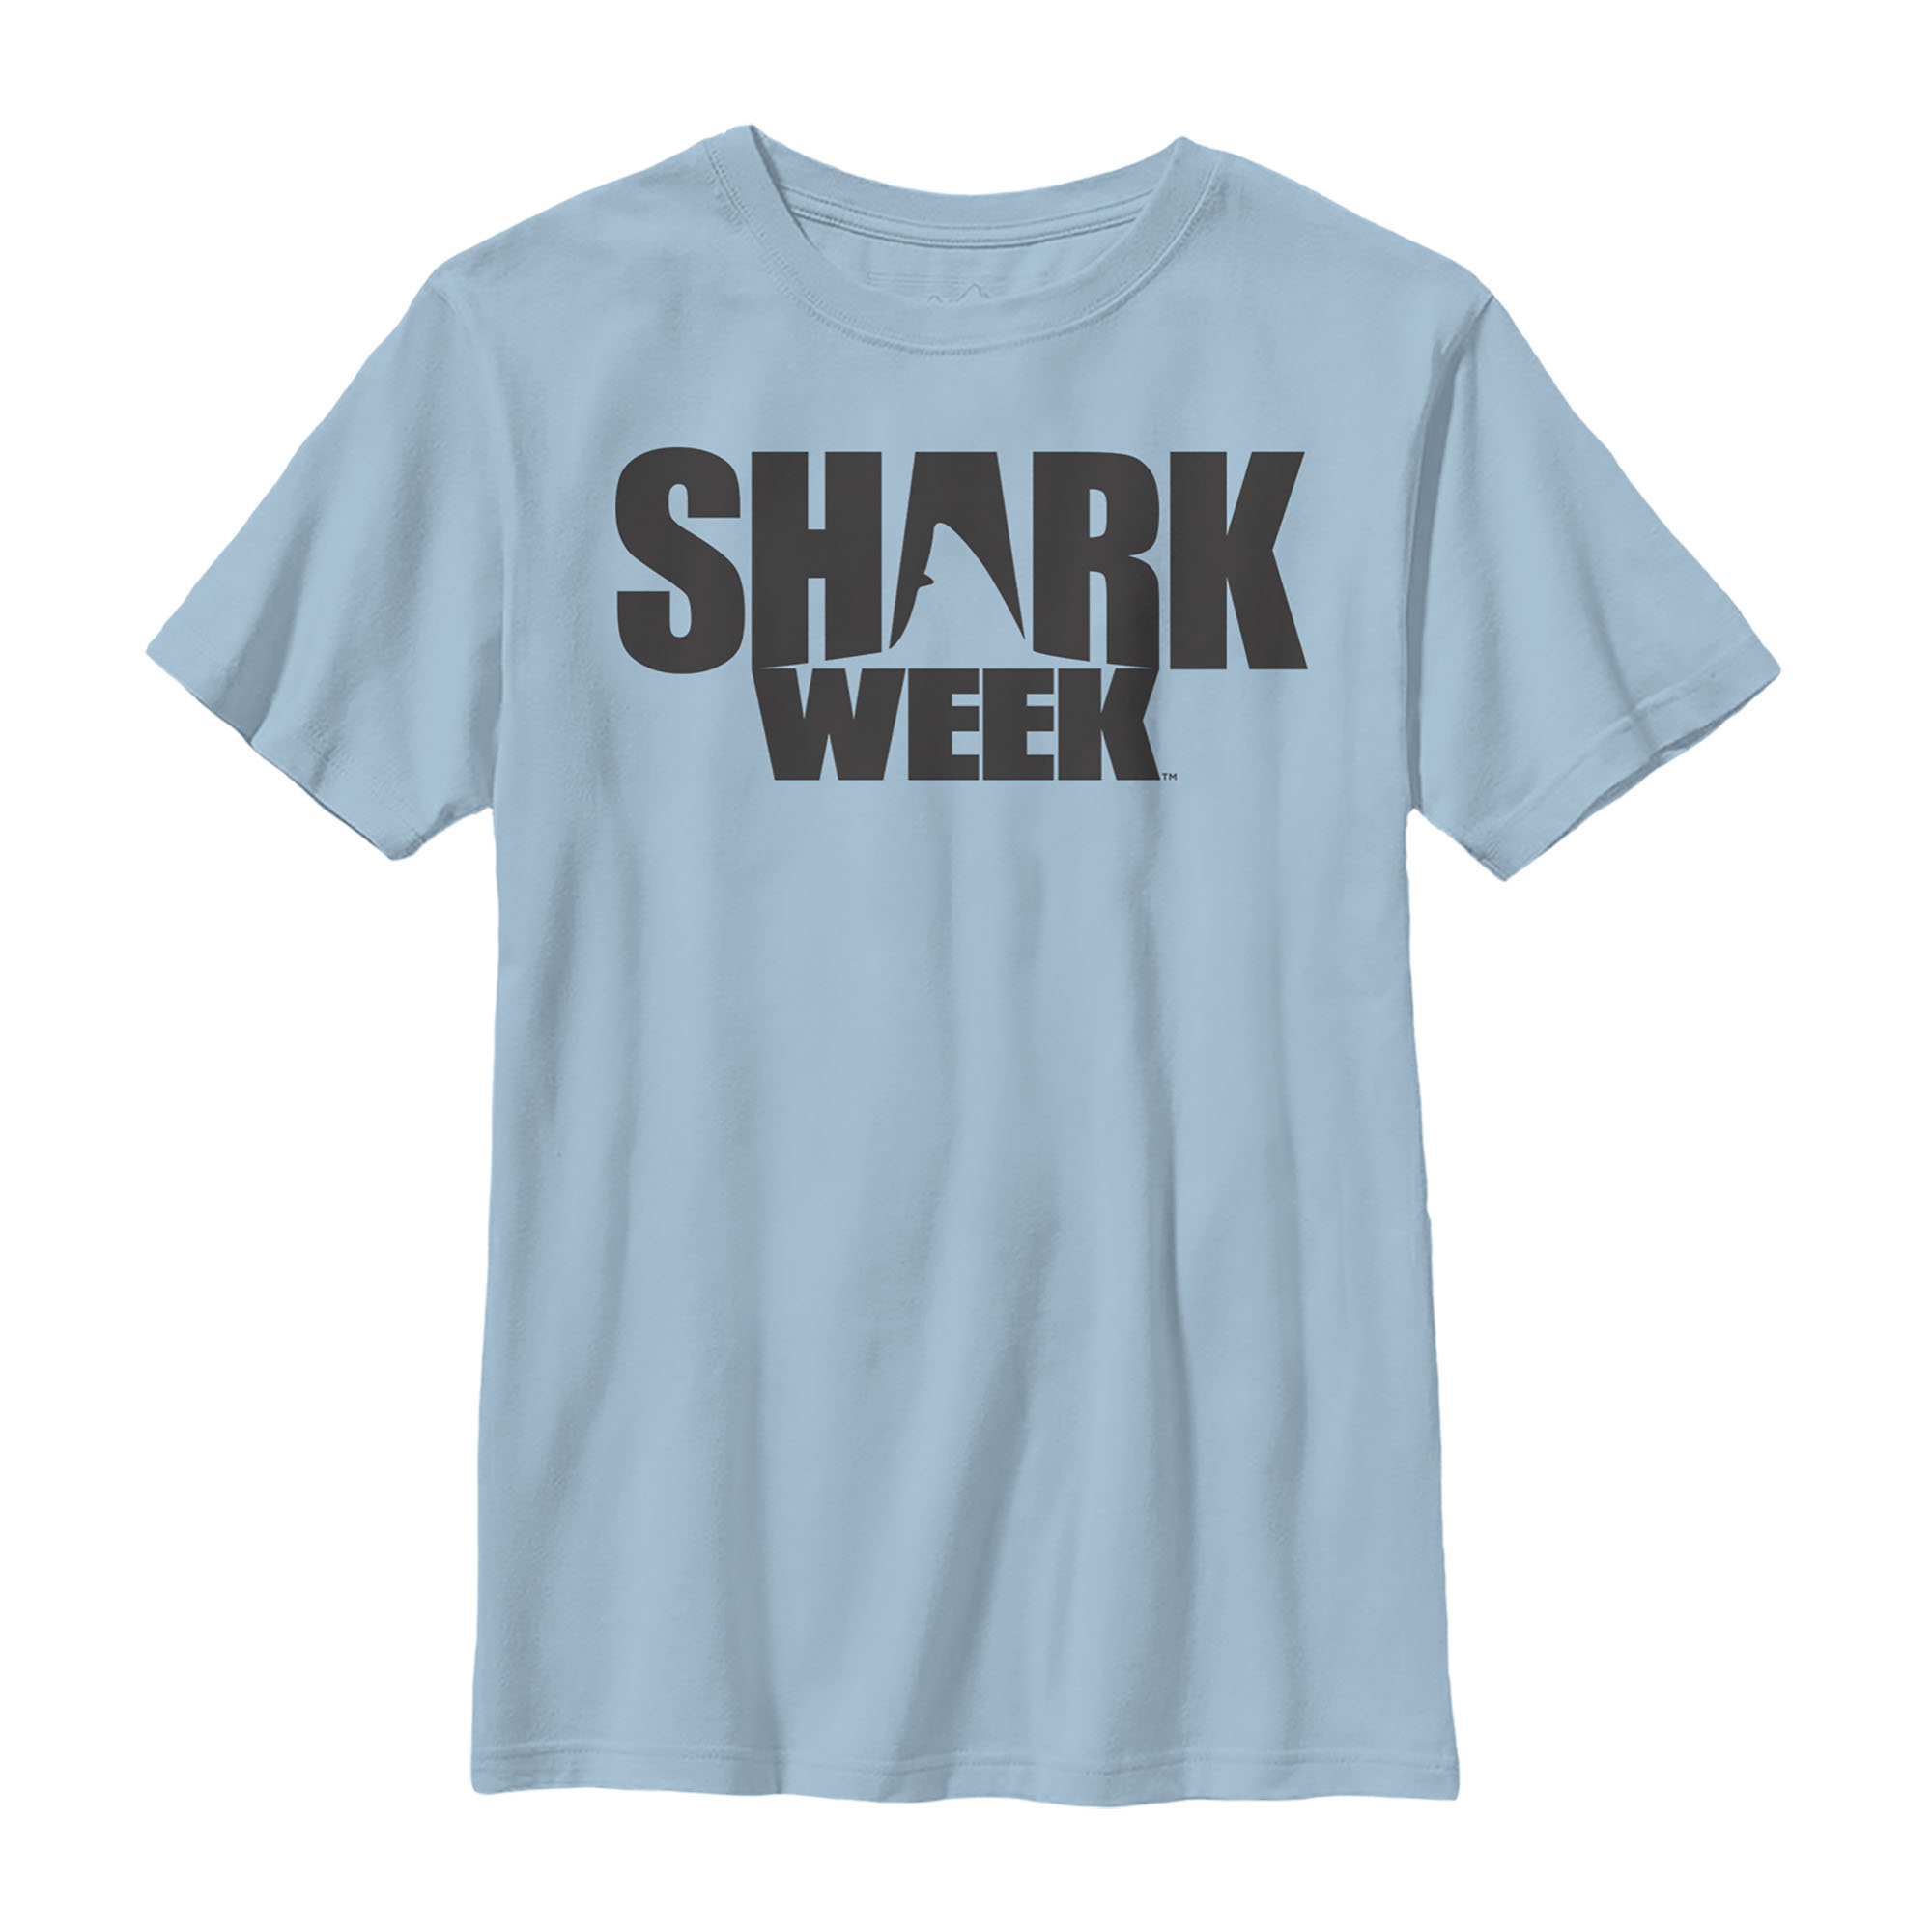 Details about Discovery Shark Week Fin Logo Boys Graphic T Shirt.